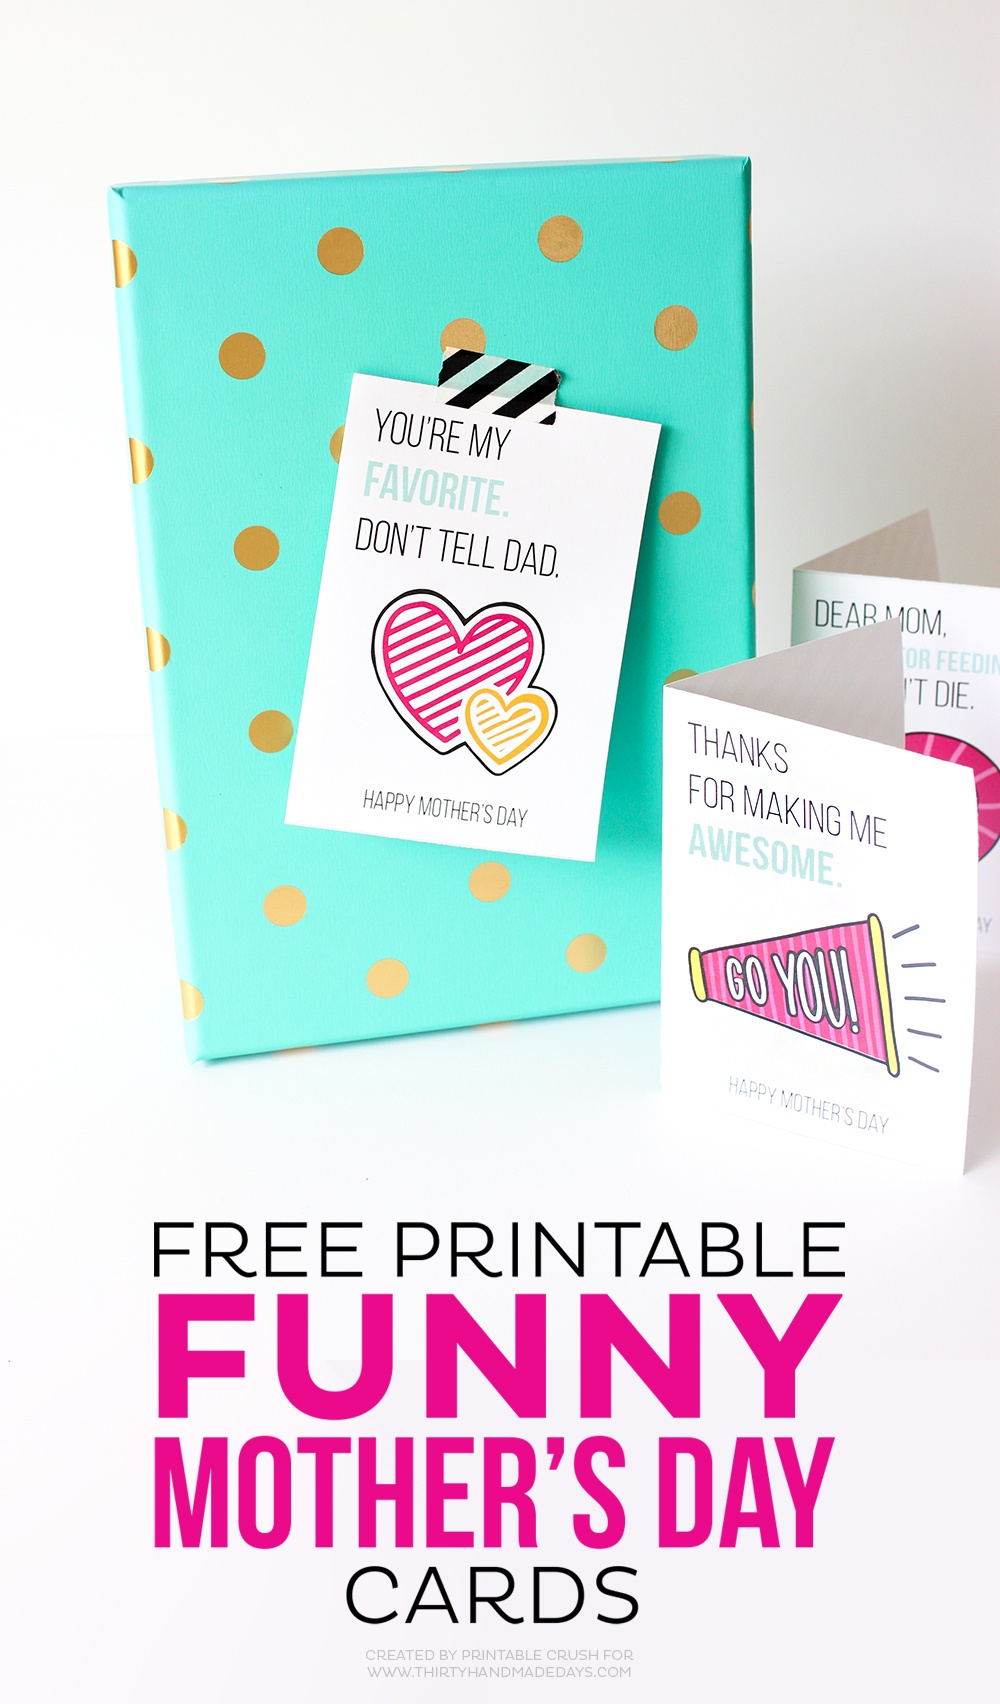 Printable Mother's Day Cards - Free Spanish Mothers Day Cards Printable